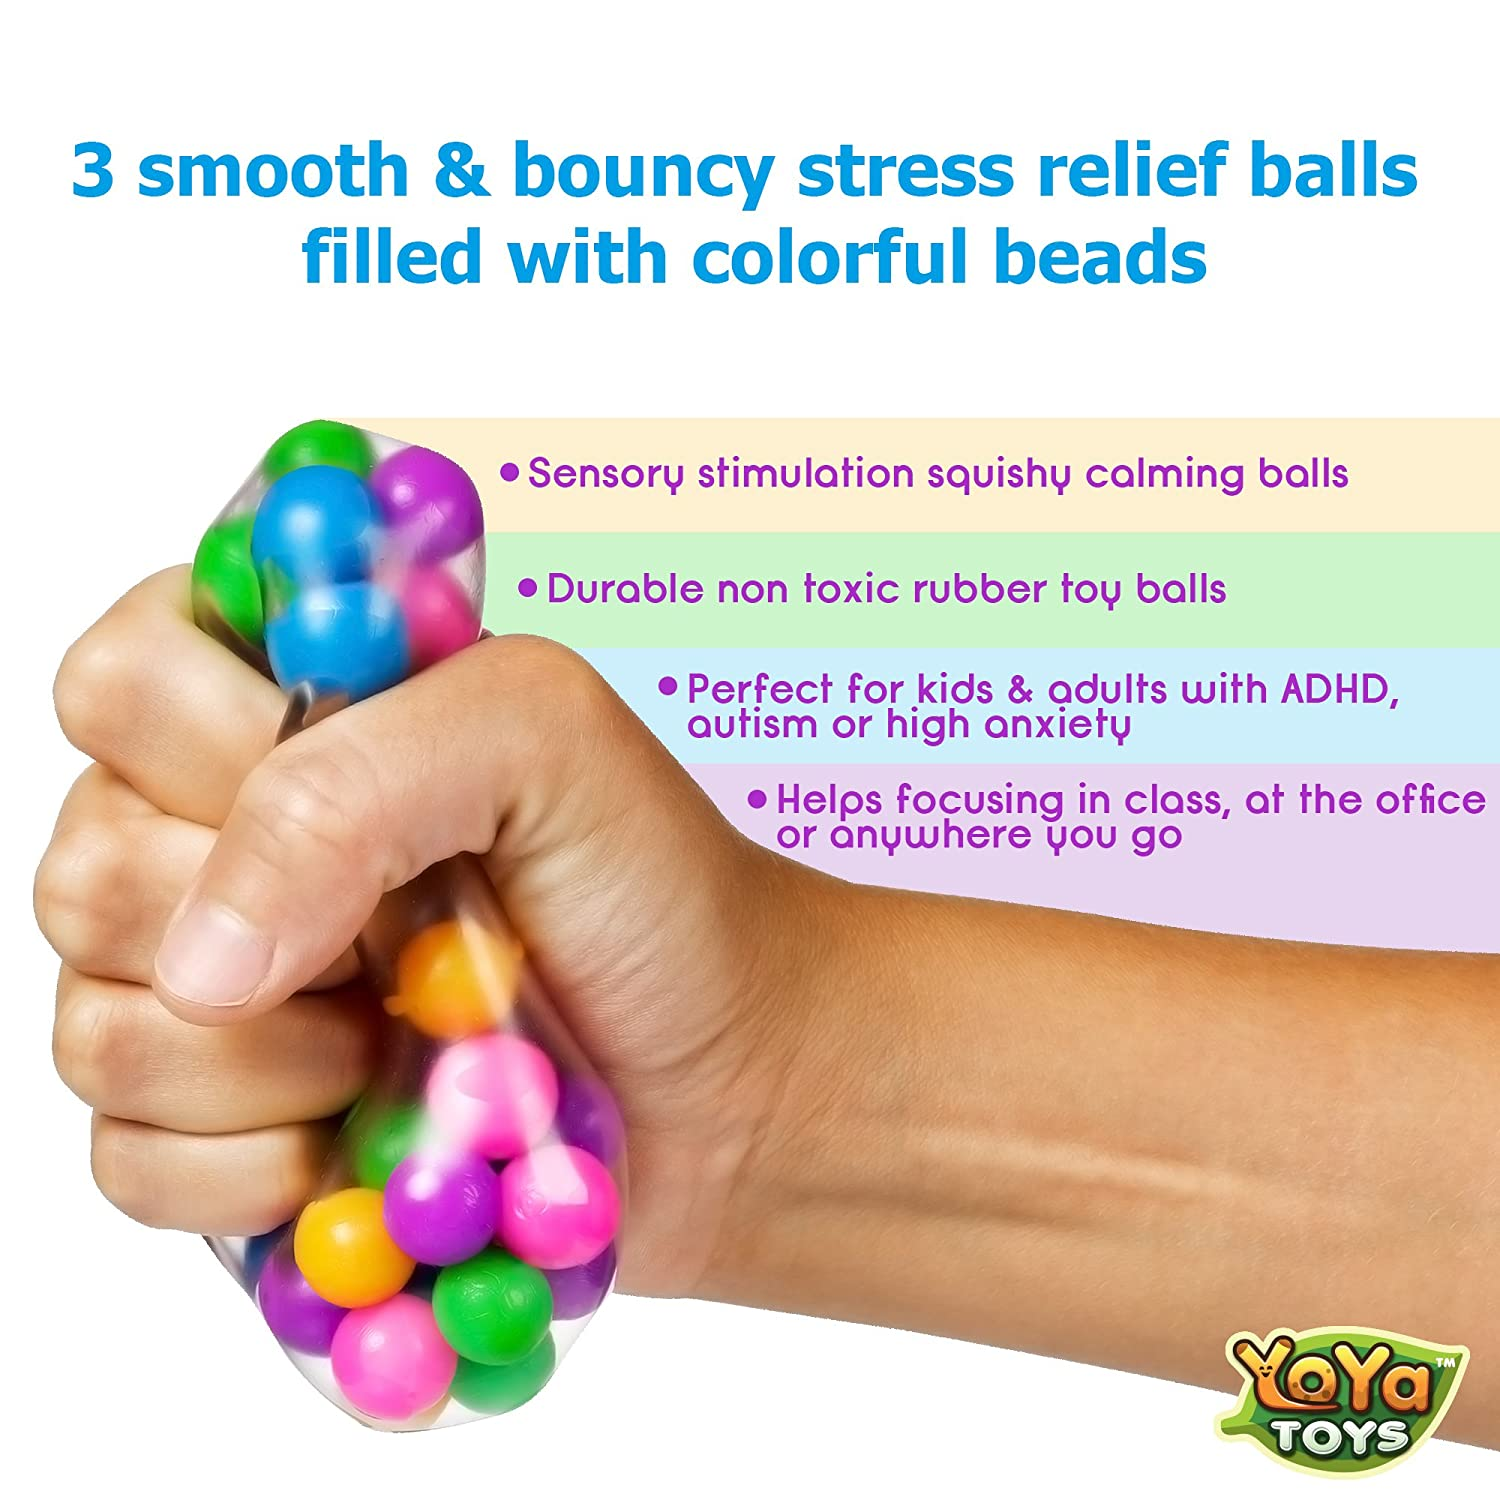 Remembering the lessons of childhood: anti-stress toys